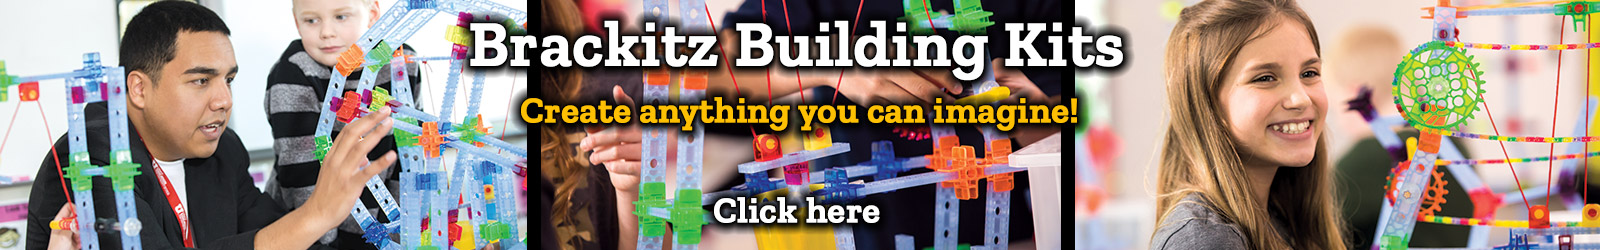 Brackitz Building Kits Create anything you can imagine!